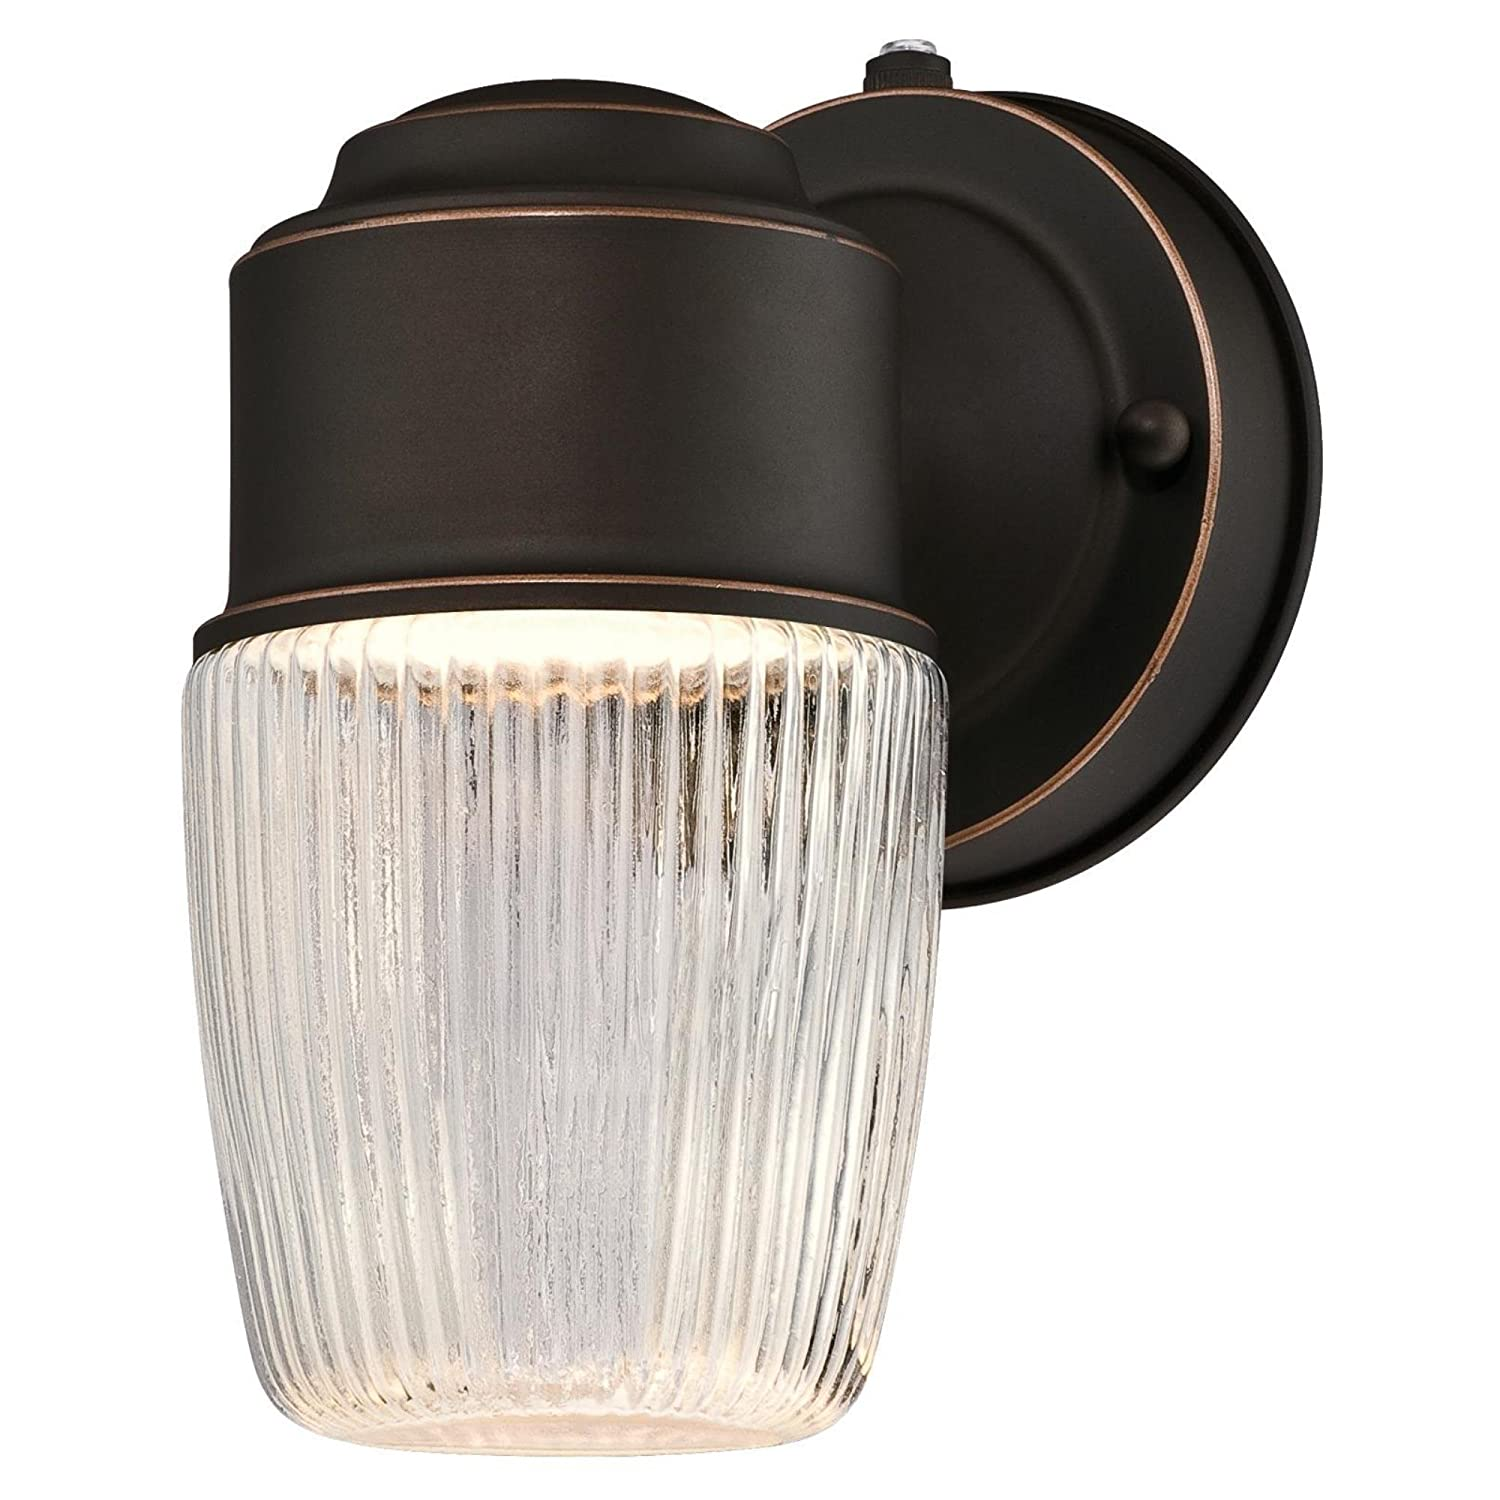 Westinghouse 6106900 One-Light LED Outdoor Wall Fixture with Dusk to Dawn Sensor, Oil Rubbed Bronze Finish with Clear Ribbed Glass